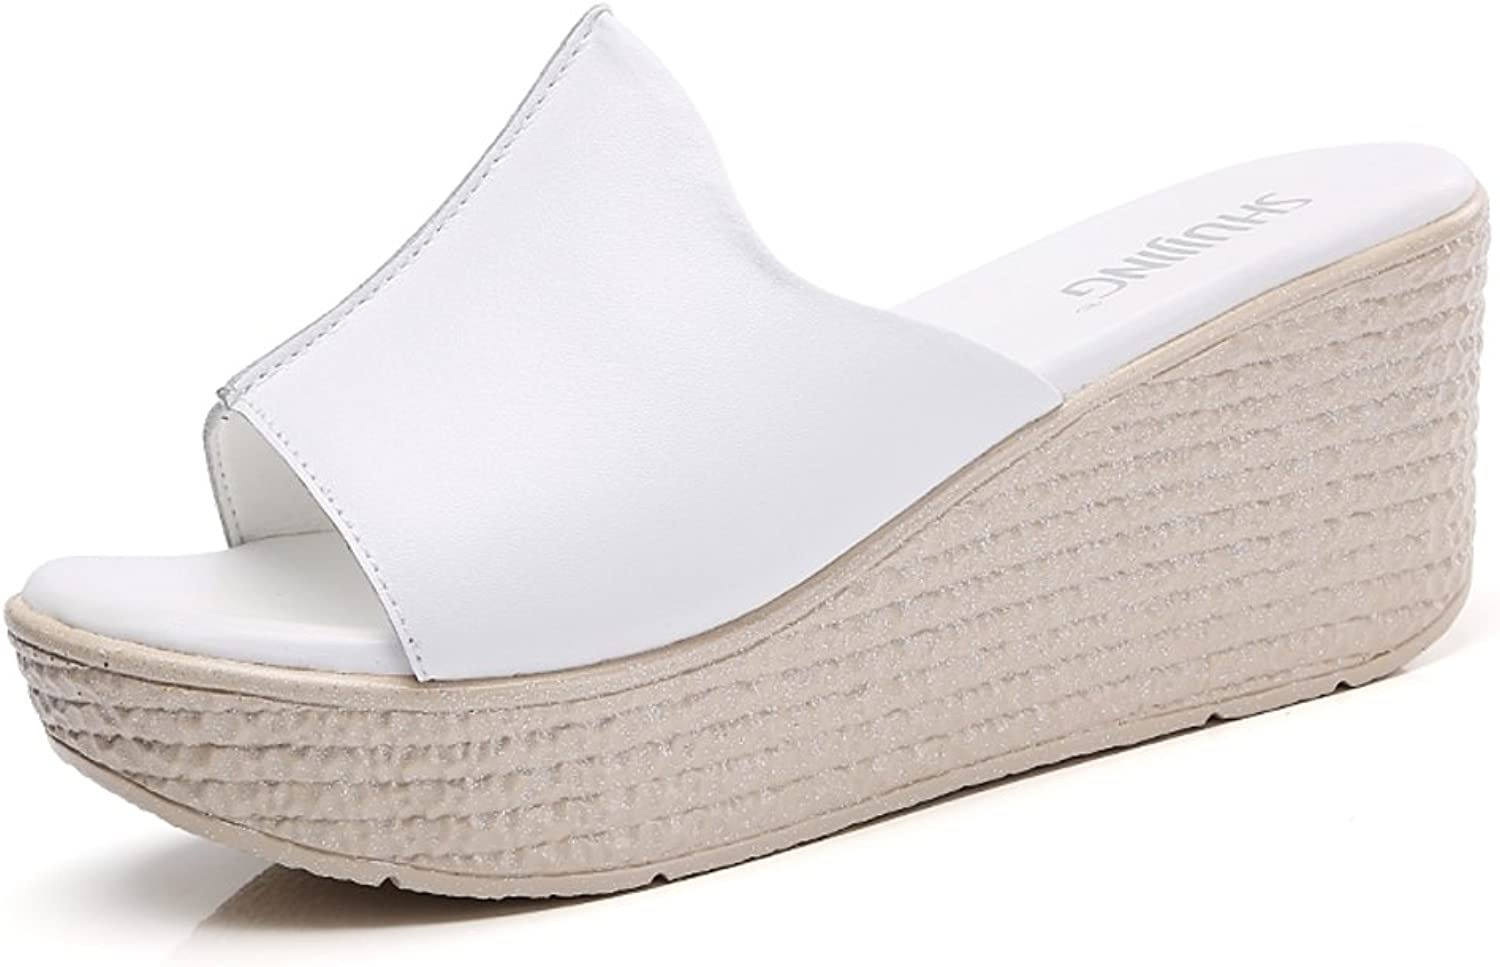 MET RXL Lady,Summer Sandals and Slippers Wedges,Thick-Soled,Fish Mouth Slippers Casual Drag